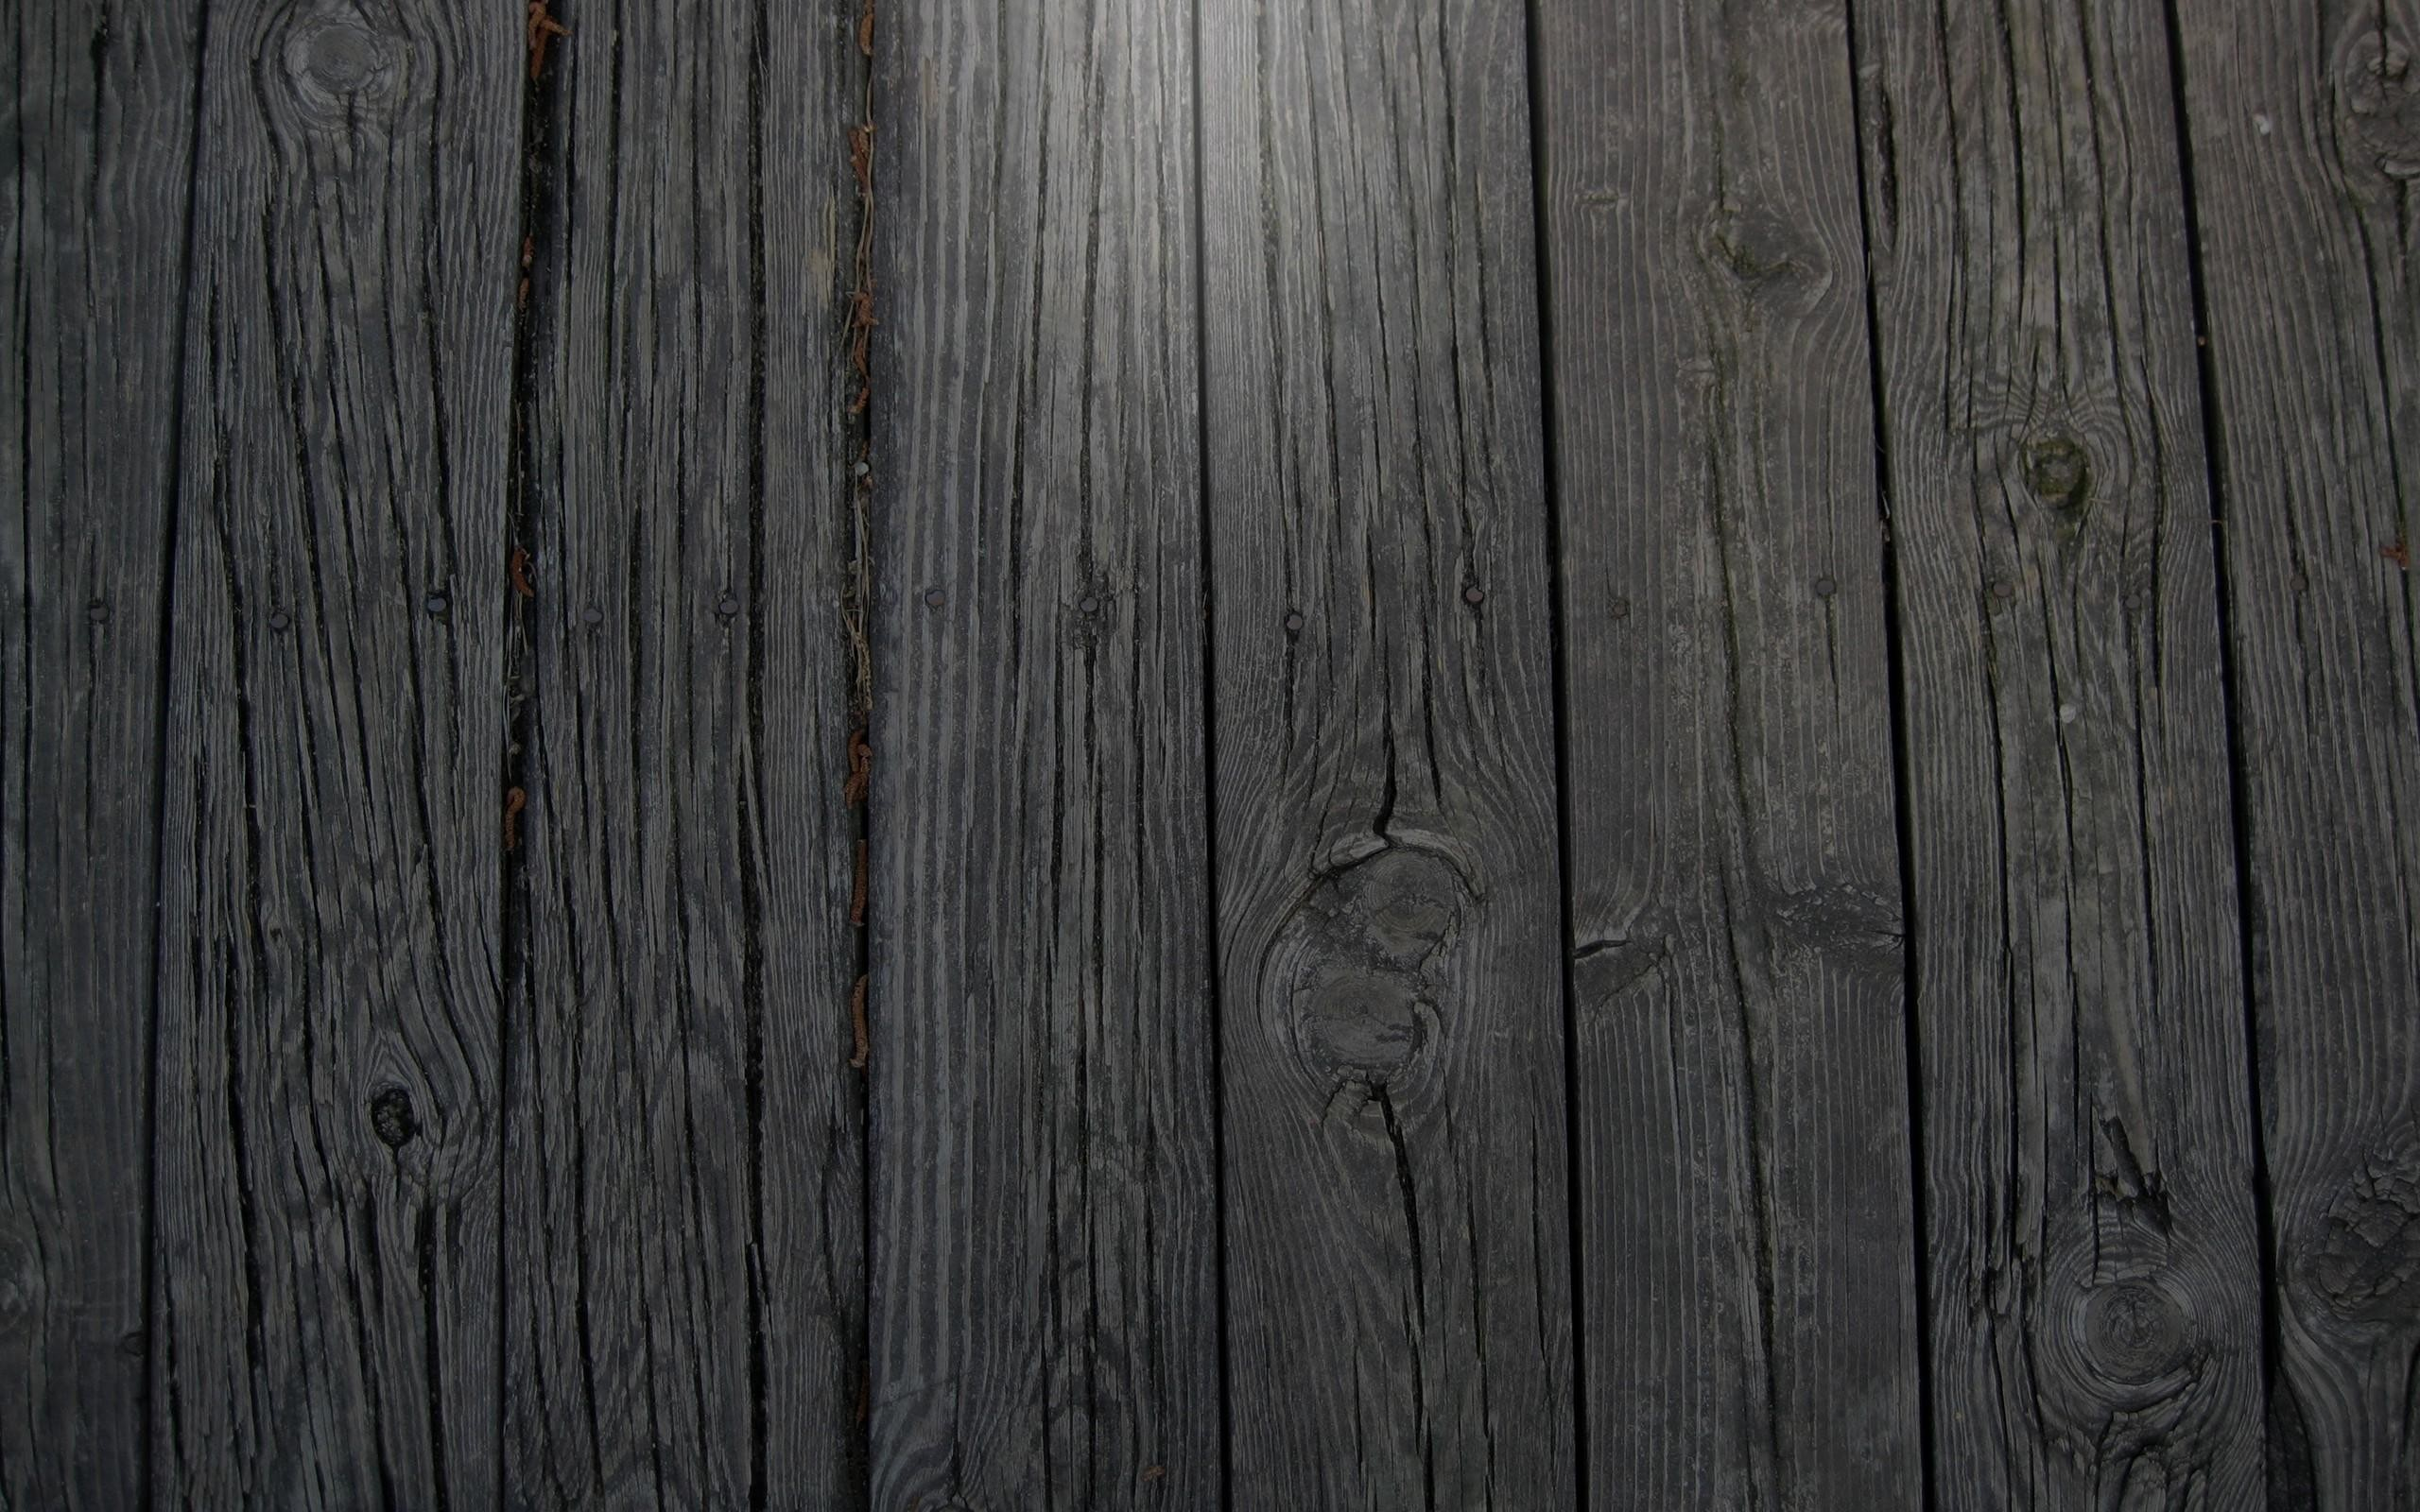 Res: 2560x1600, HD Wallpaper | Background Image ID:78258.  Artistic Wood